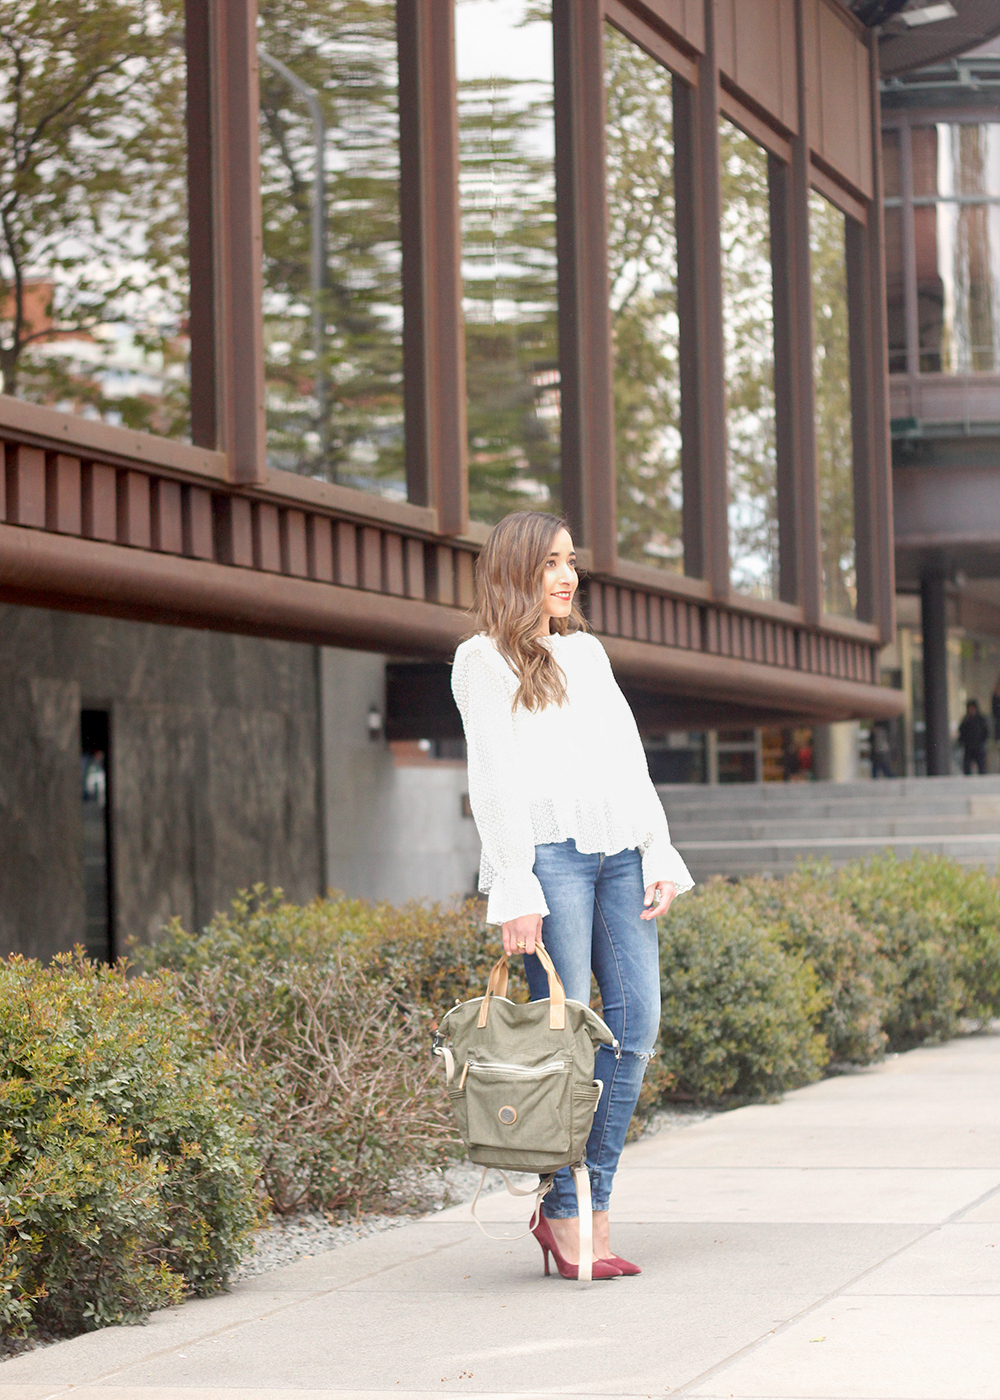 kipling backpack transformation collection khaki white lace blouse casual street style casual outfit 20196